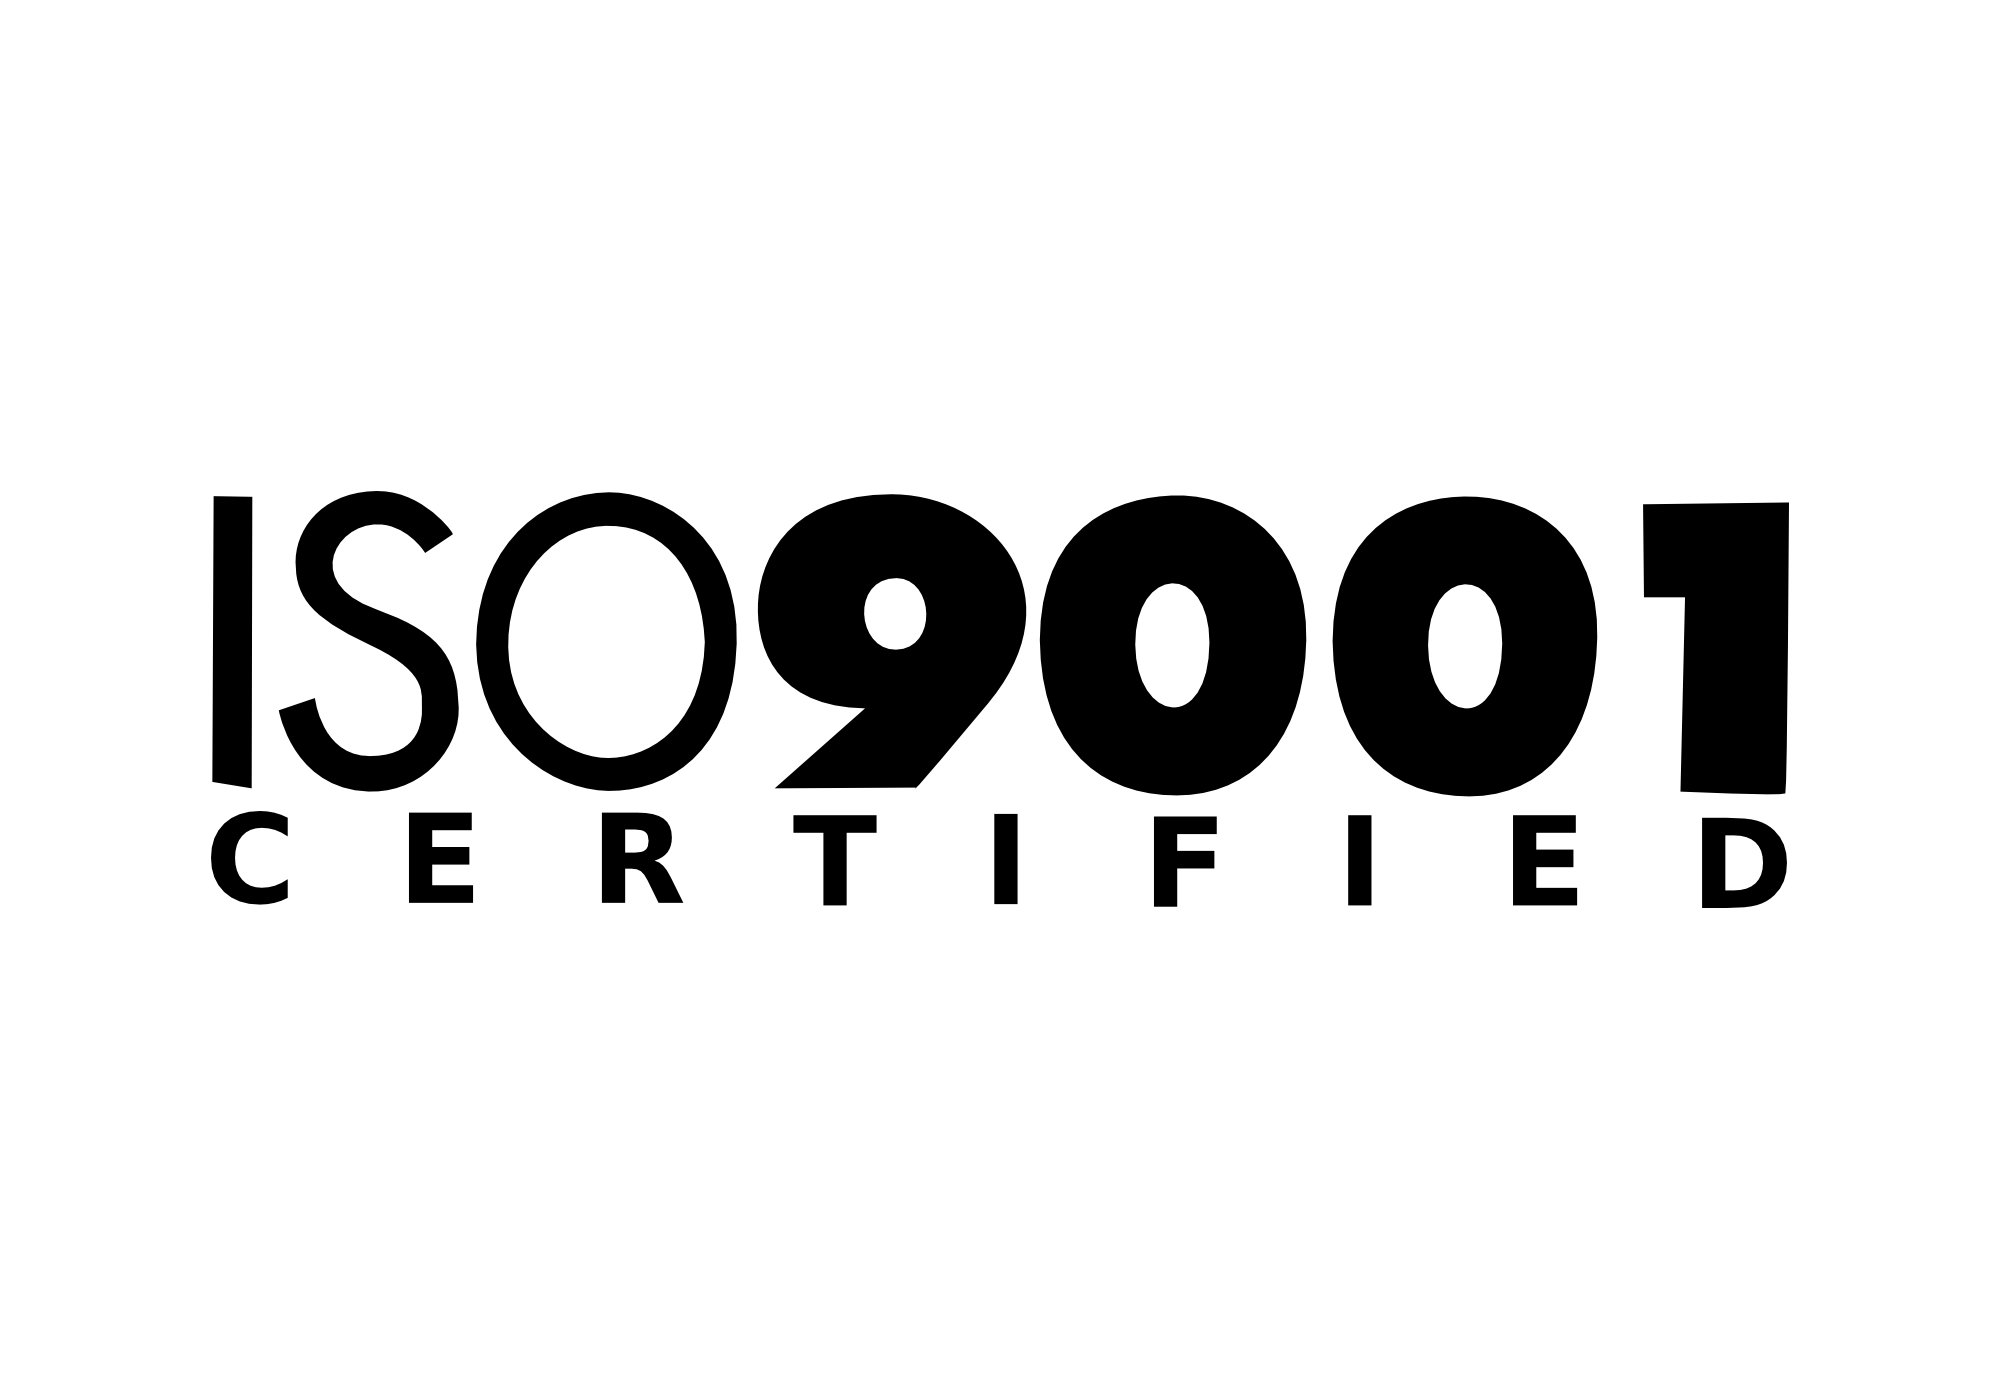 Plastitel-thermoformage-thermoforming-certifie-certified-iso-9001